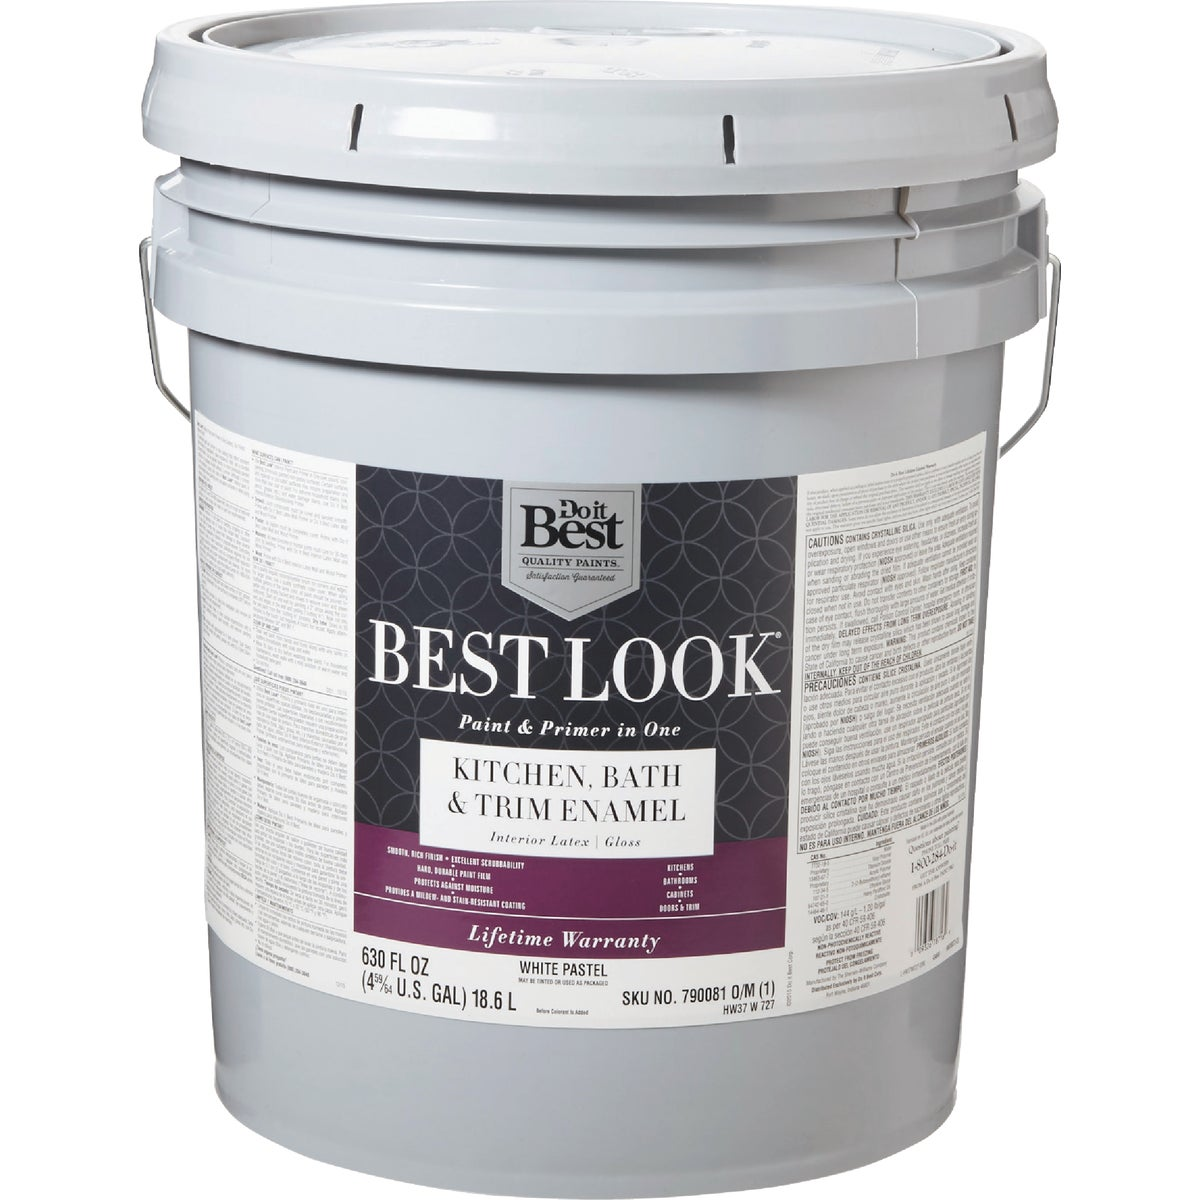 GLS WHT/PASTL BATH PAINT